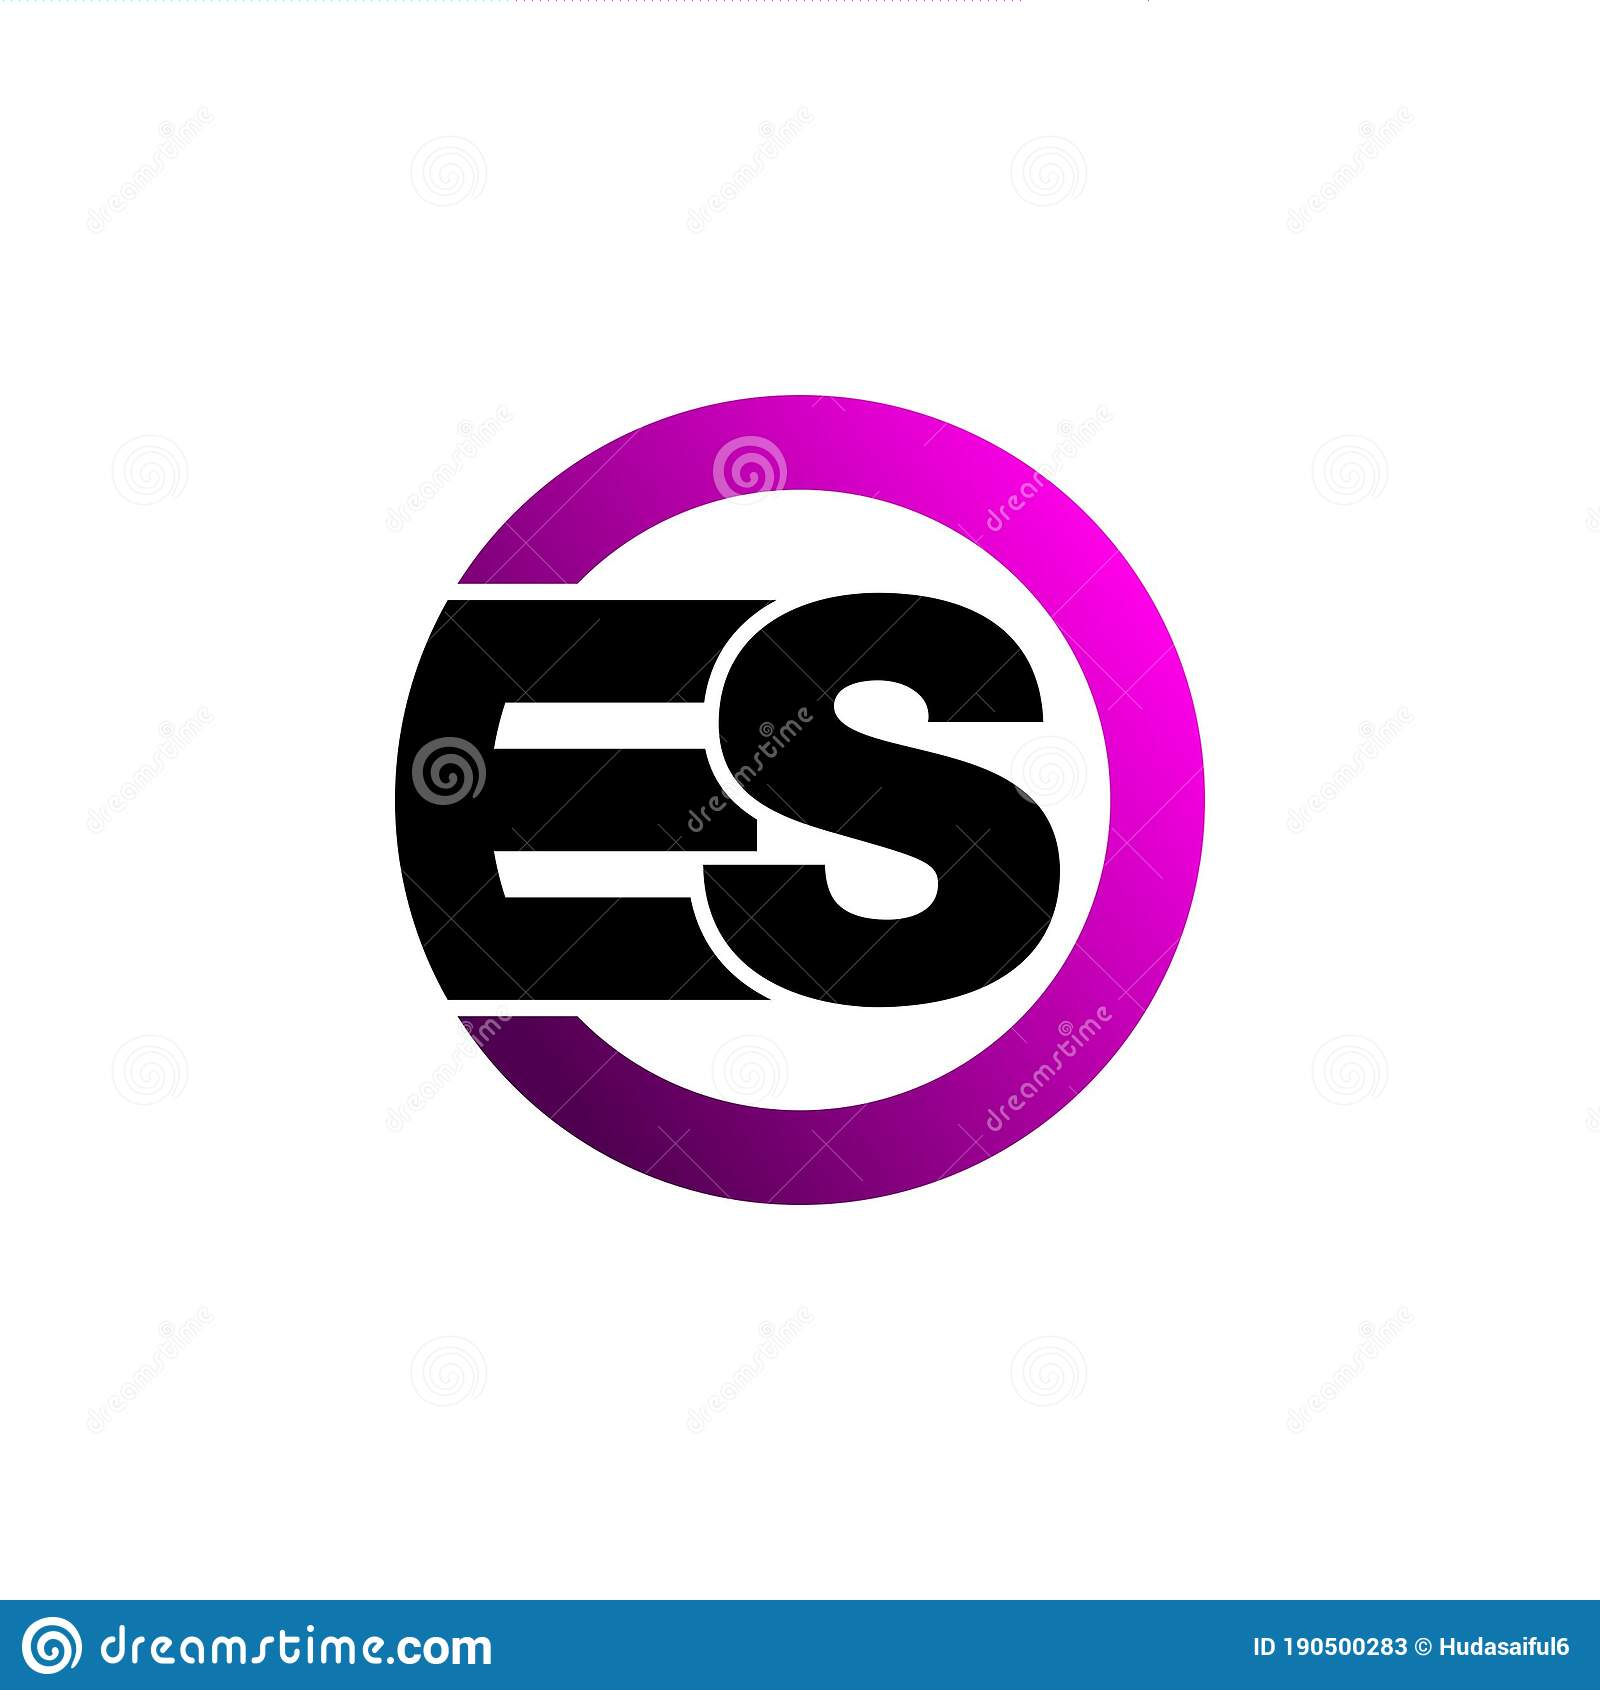 Letter Es Monogram Logo Icon Design Vector Stock Vector Illustration Of Data Icon 190500283